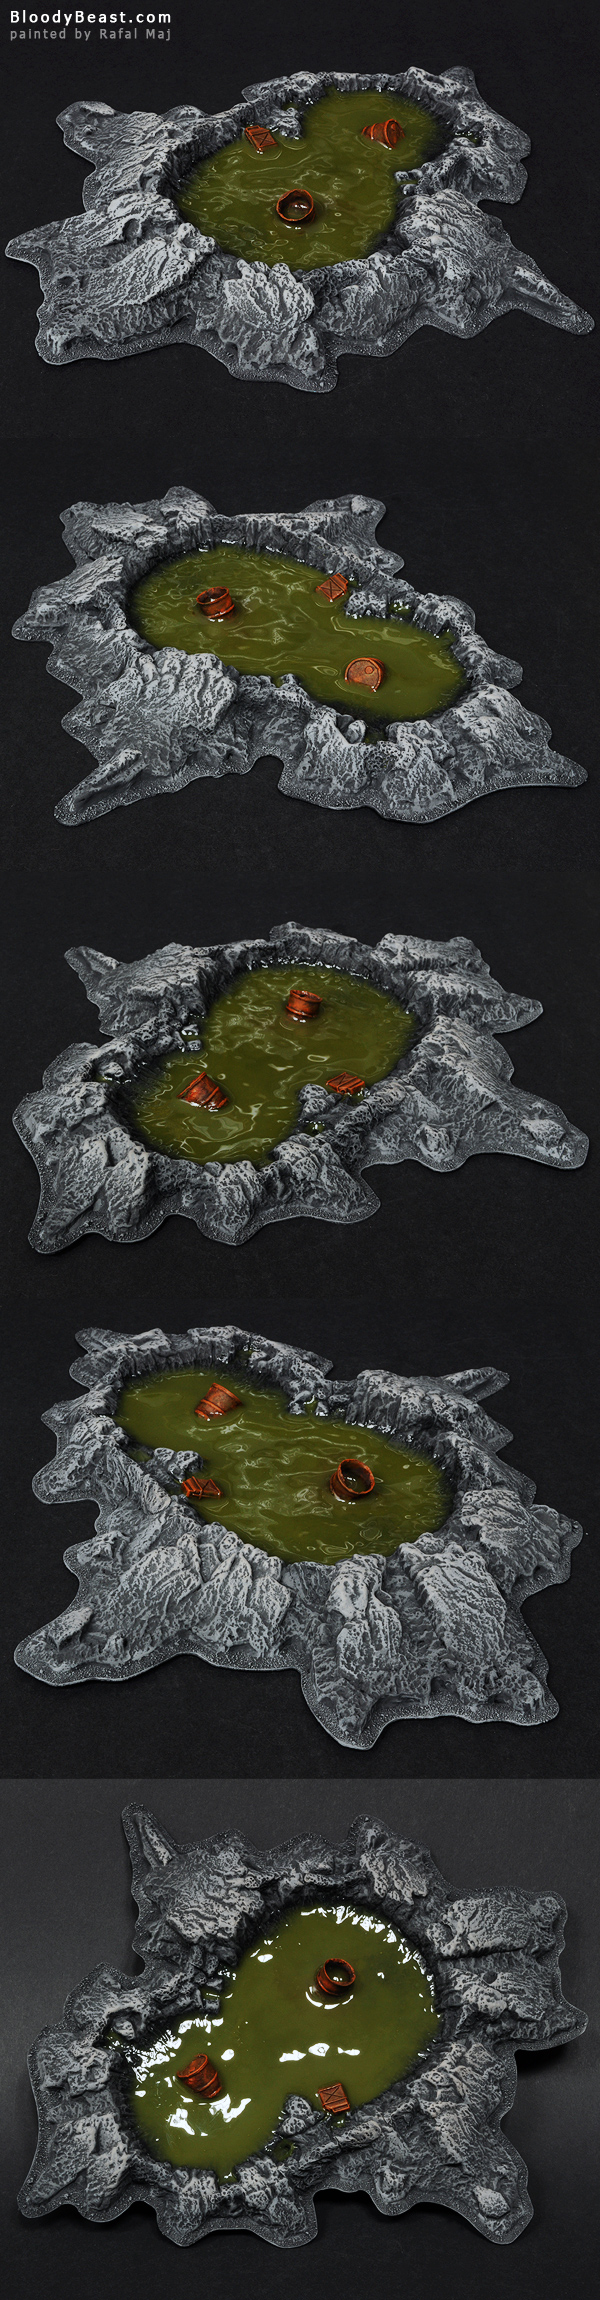 Crater Lake painted by Rafal Maj (BloodyBeast.com)